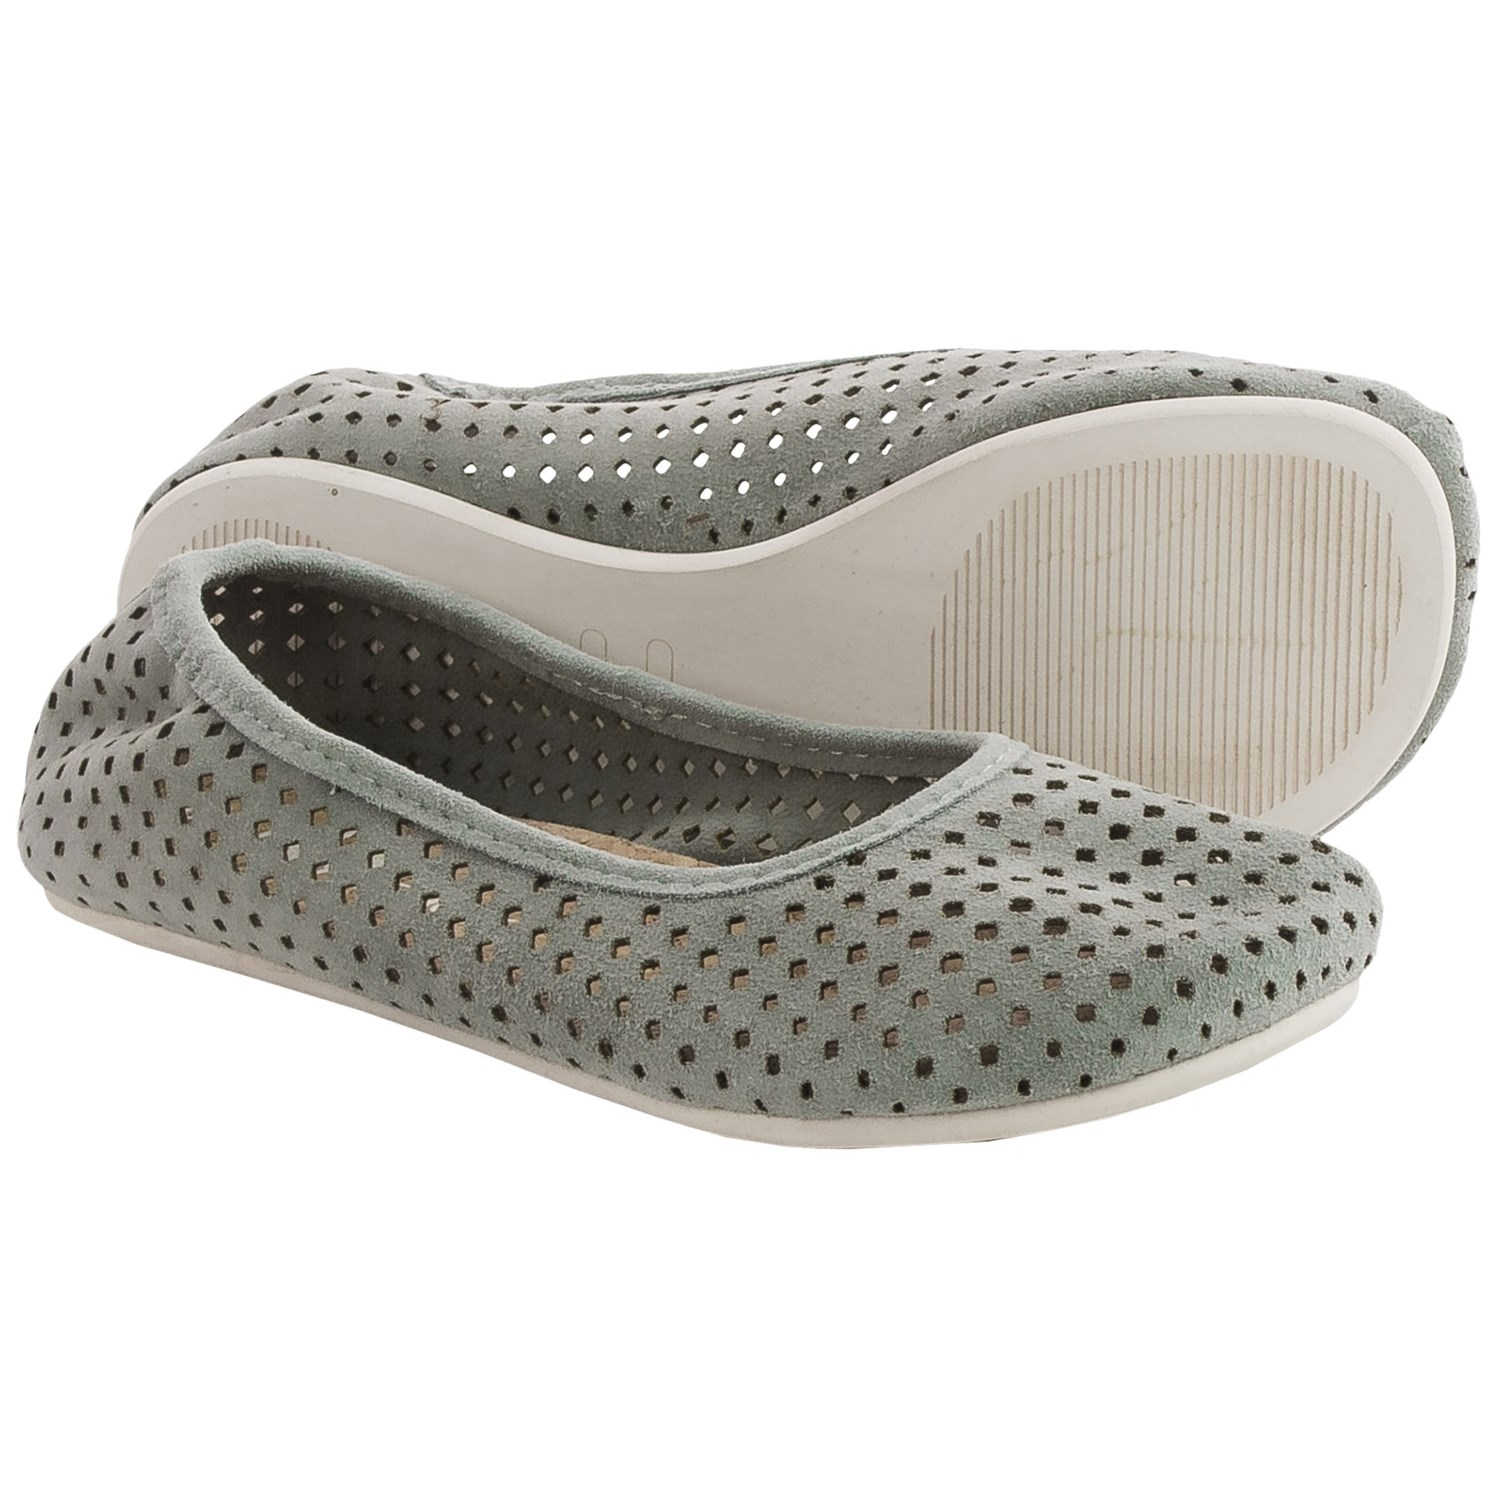 Otz Shoes Semis Perforated Suede Ballet Flats